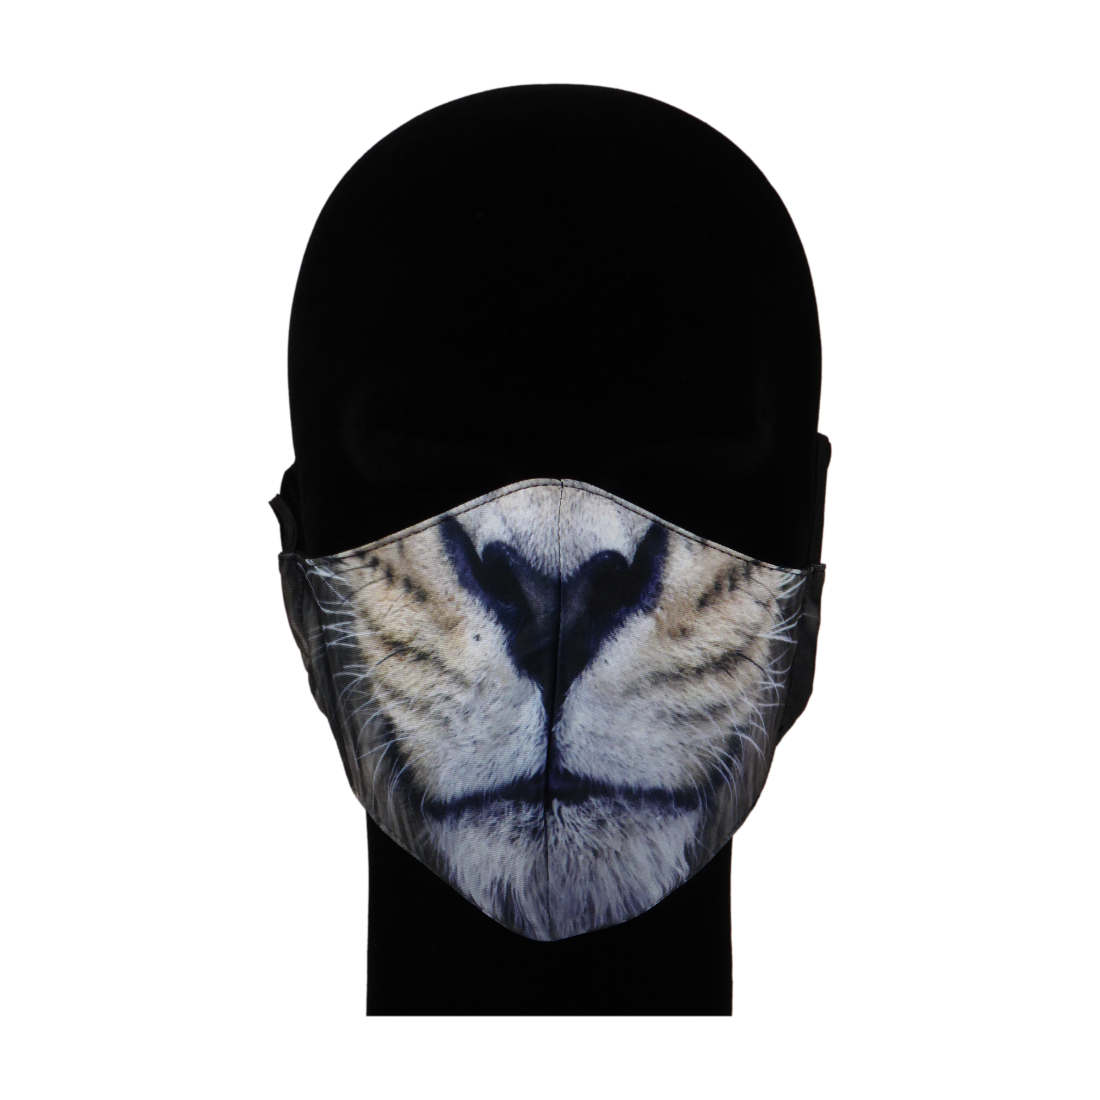 King Cobra Store 100% polyester mouth and face mask protection against dust pollen pollution or airborne covid 19 corona viruses elastic straps comfortable breathing and wearing reusable washable inspired by animal half face lion mask mouth and nose